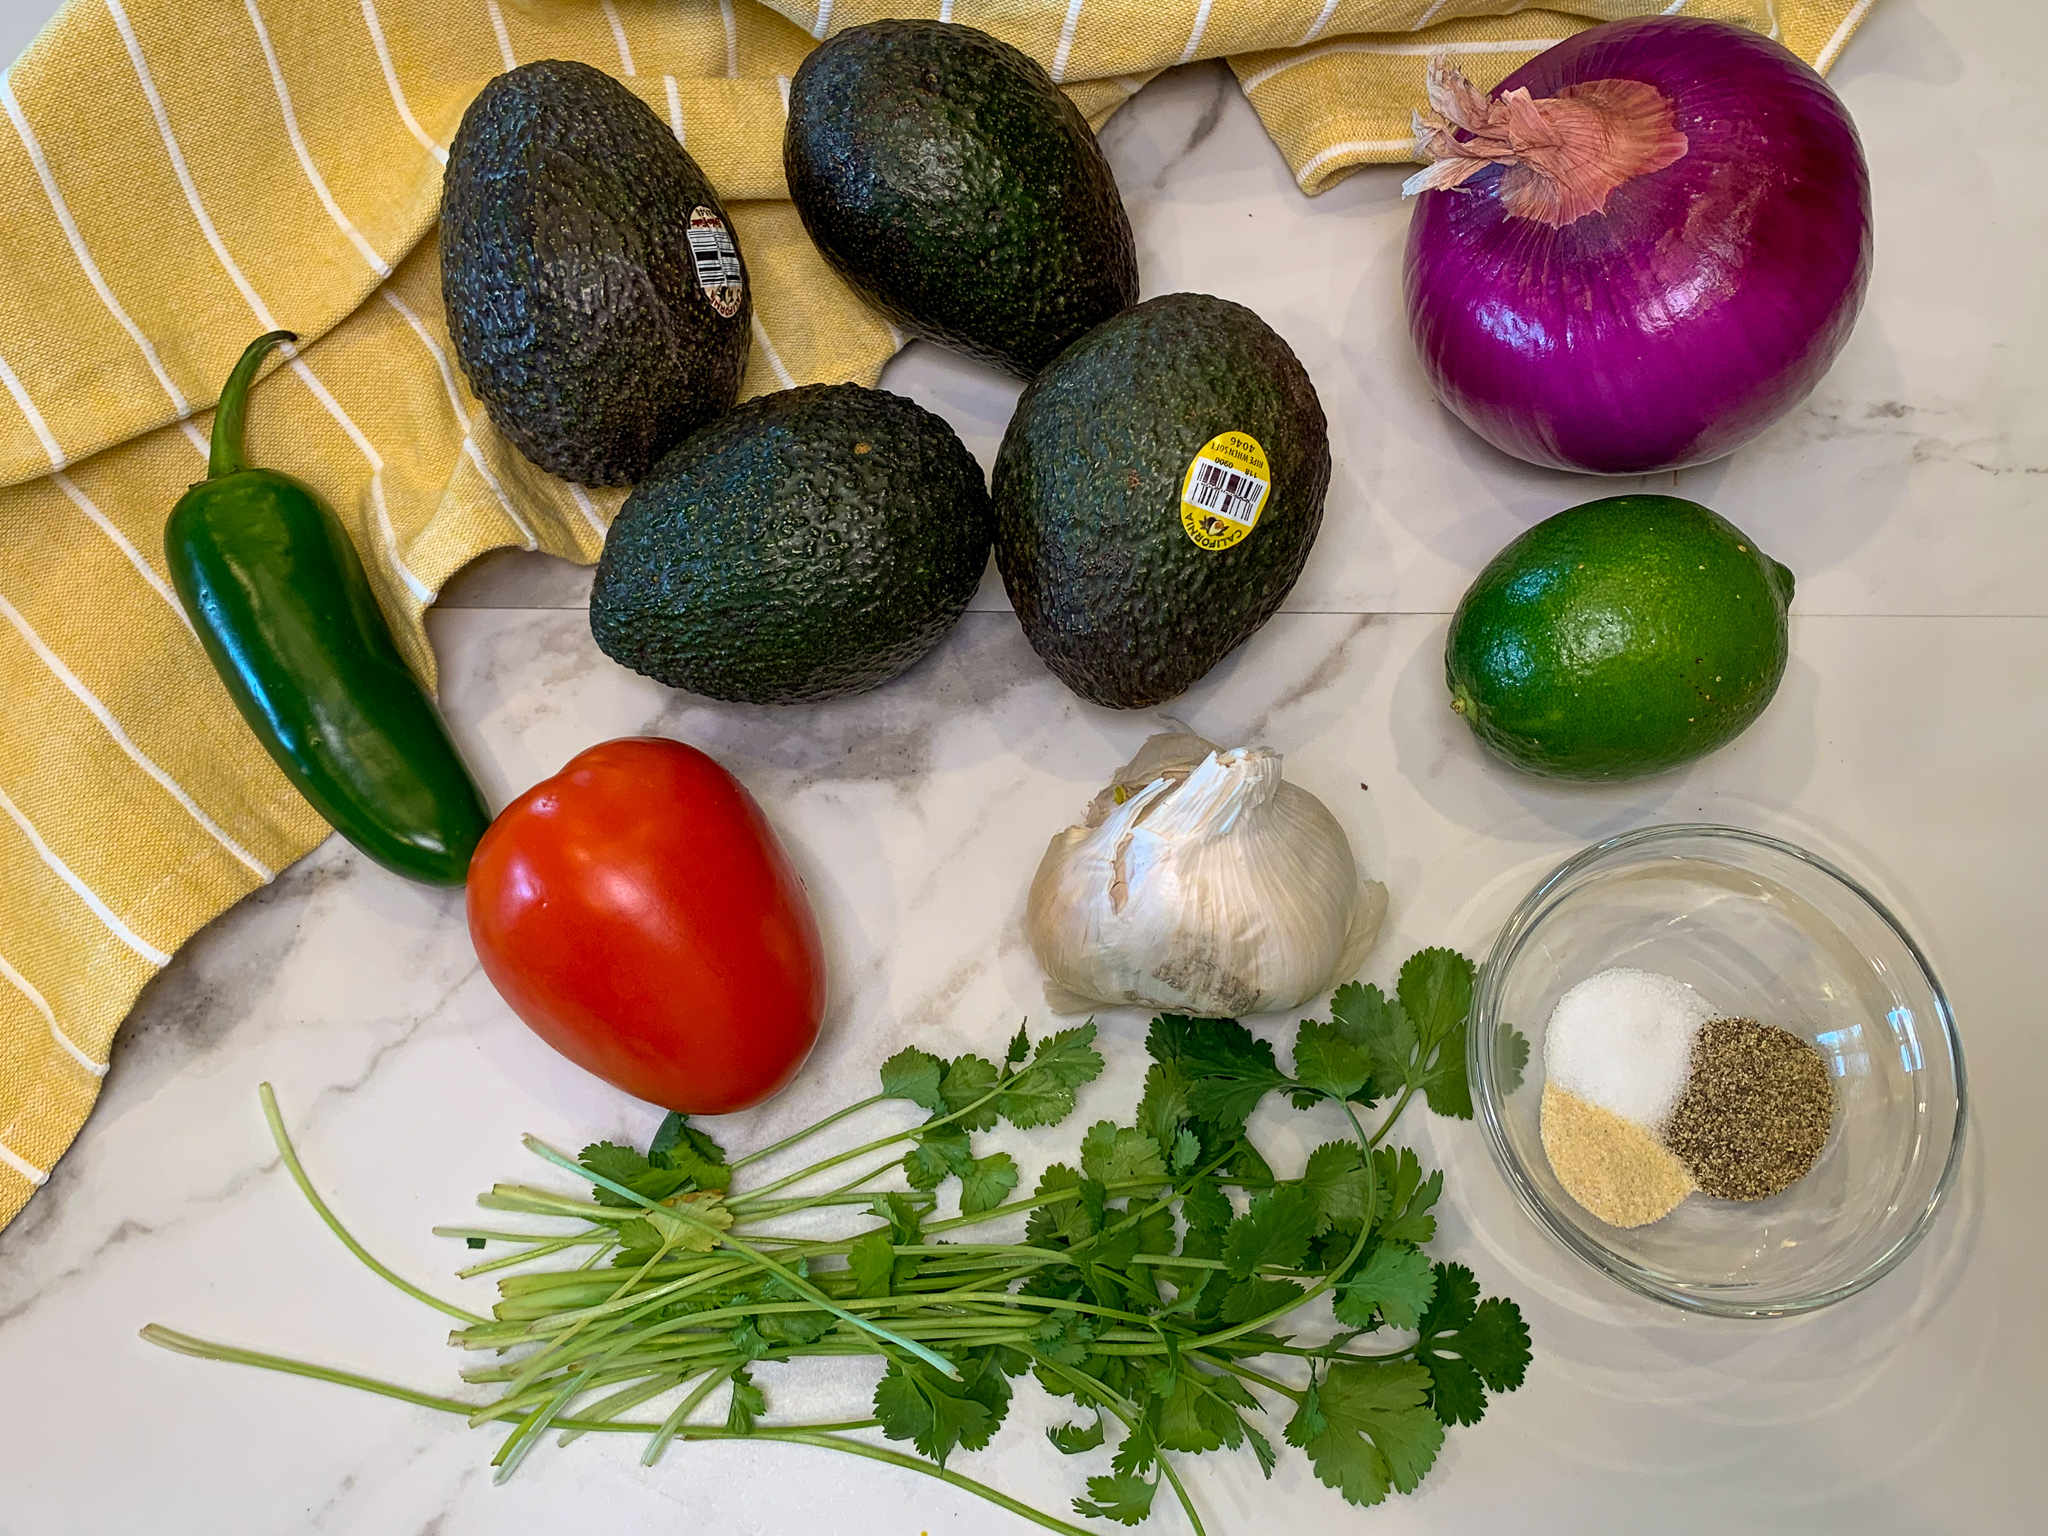 ingredients needed for guacamole